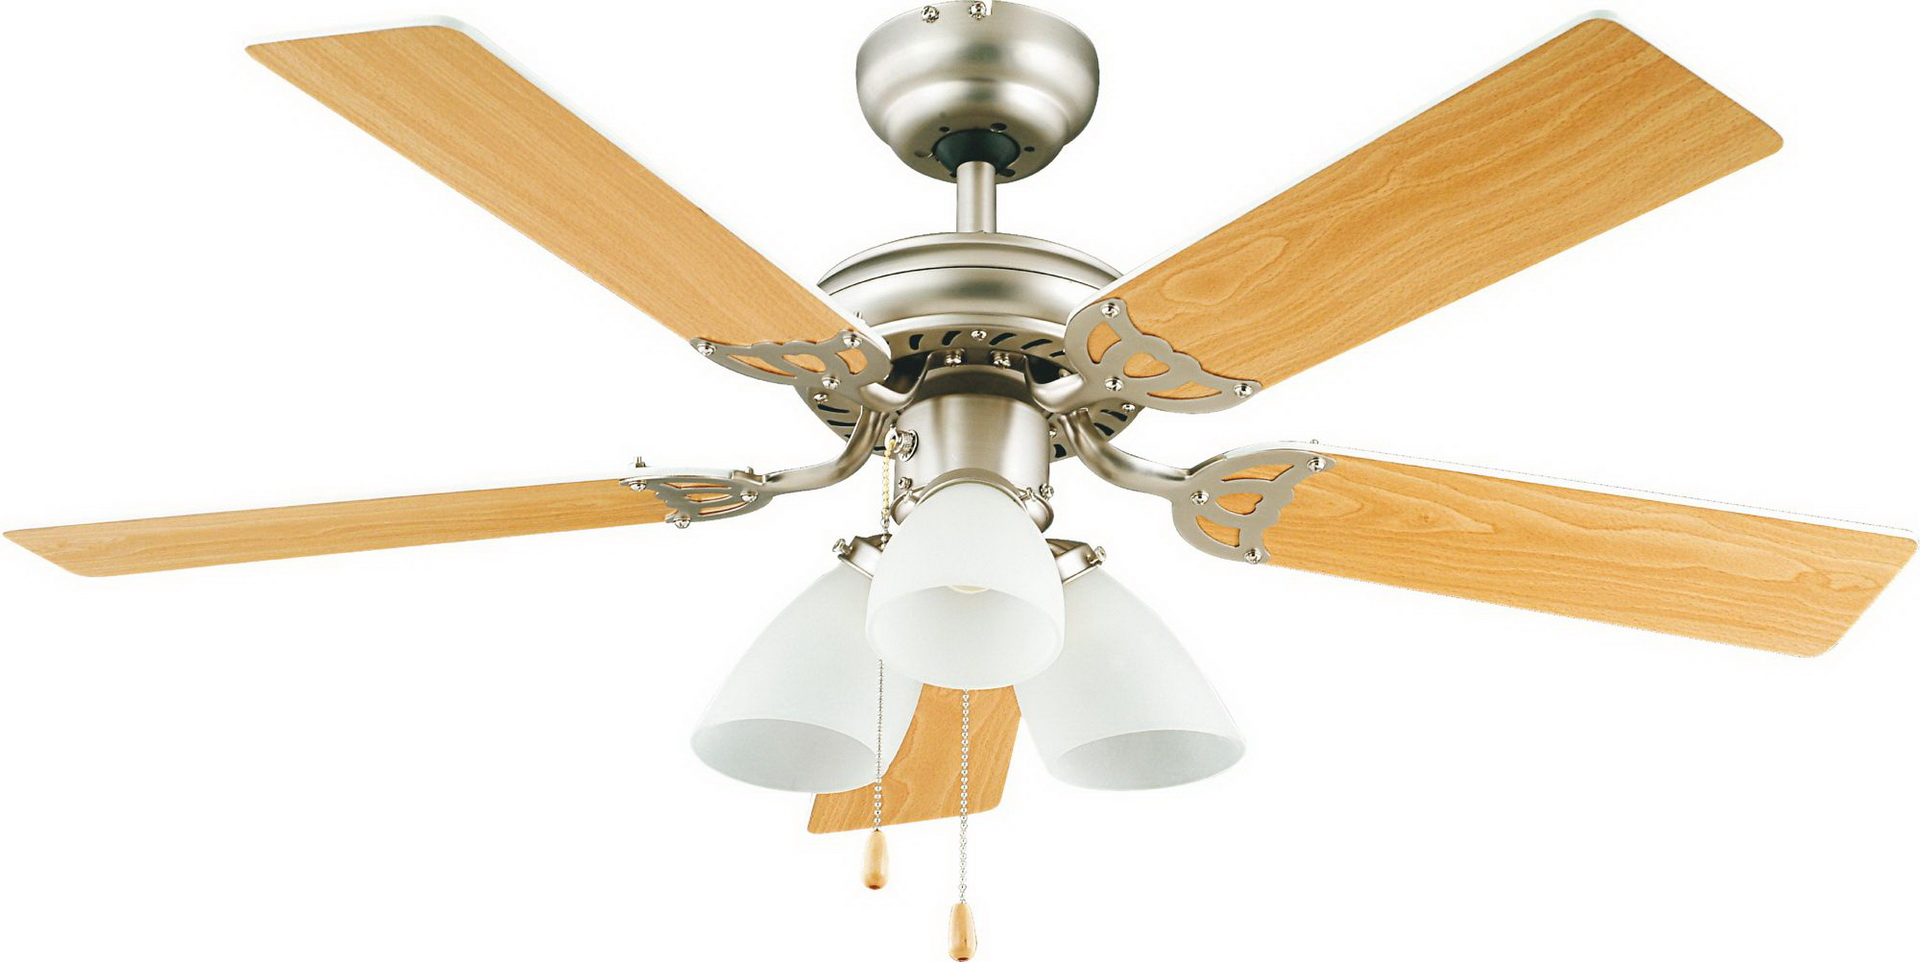 Led Bathroom Lights Homebase homebase ceiling fans - 13 methods perfect choices to cool up your